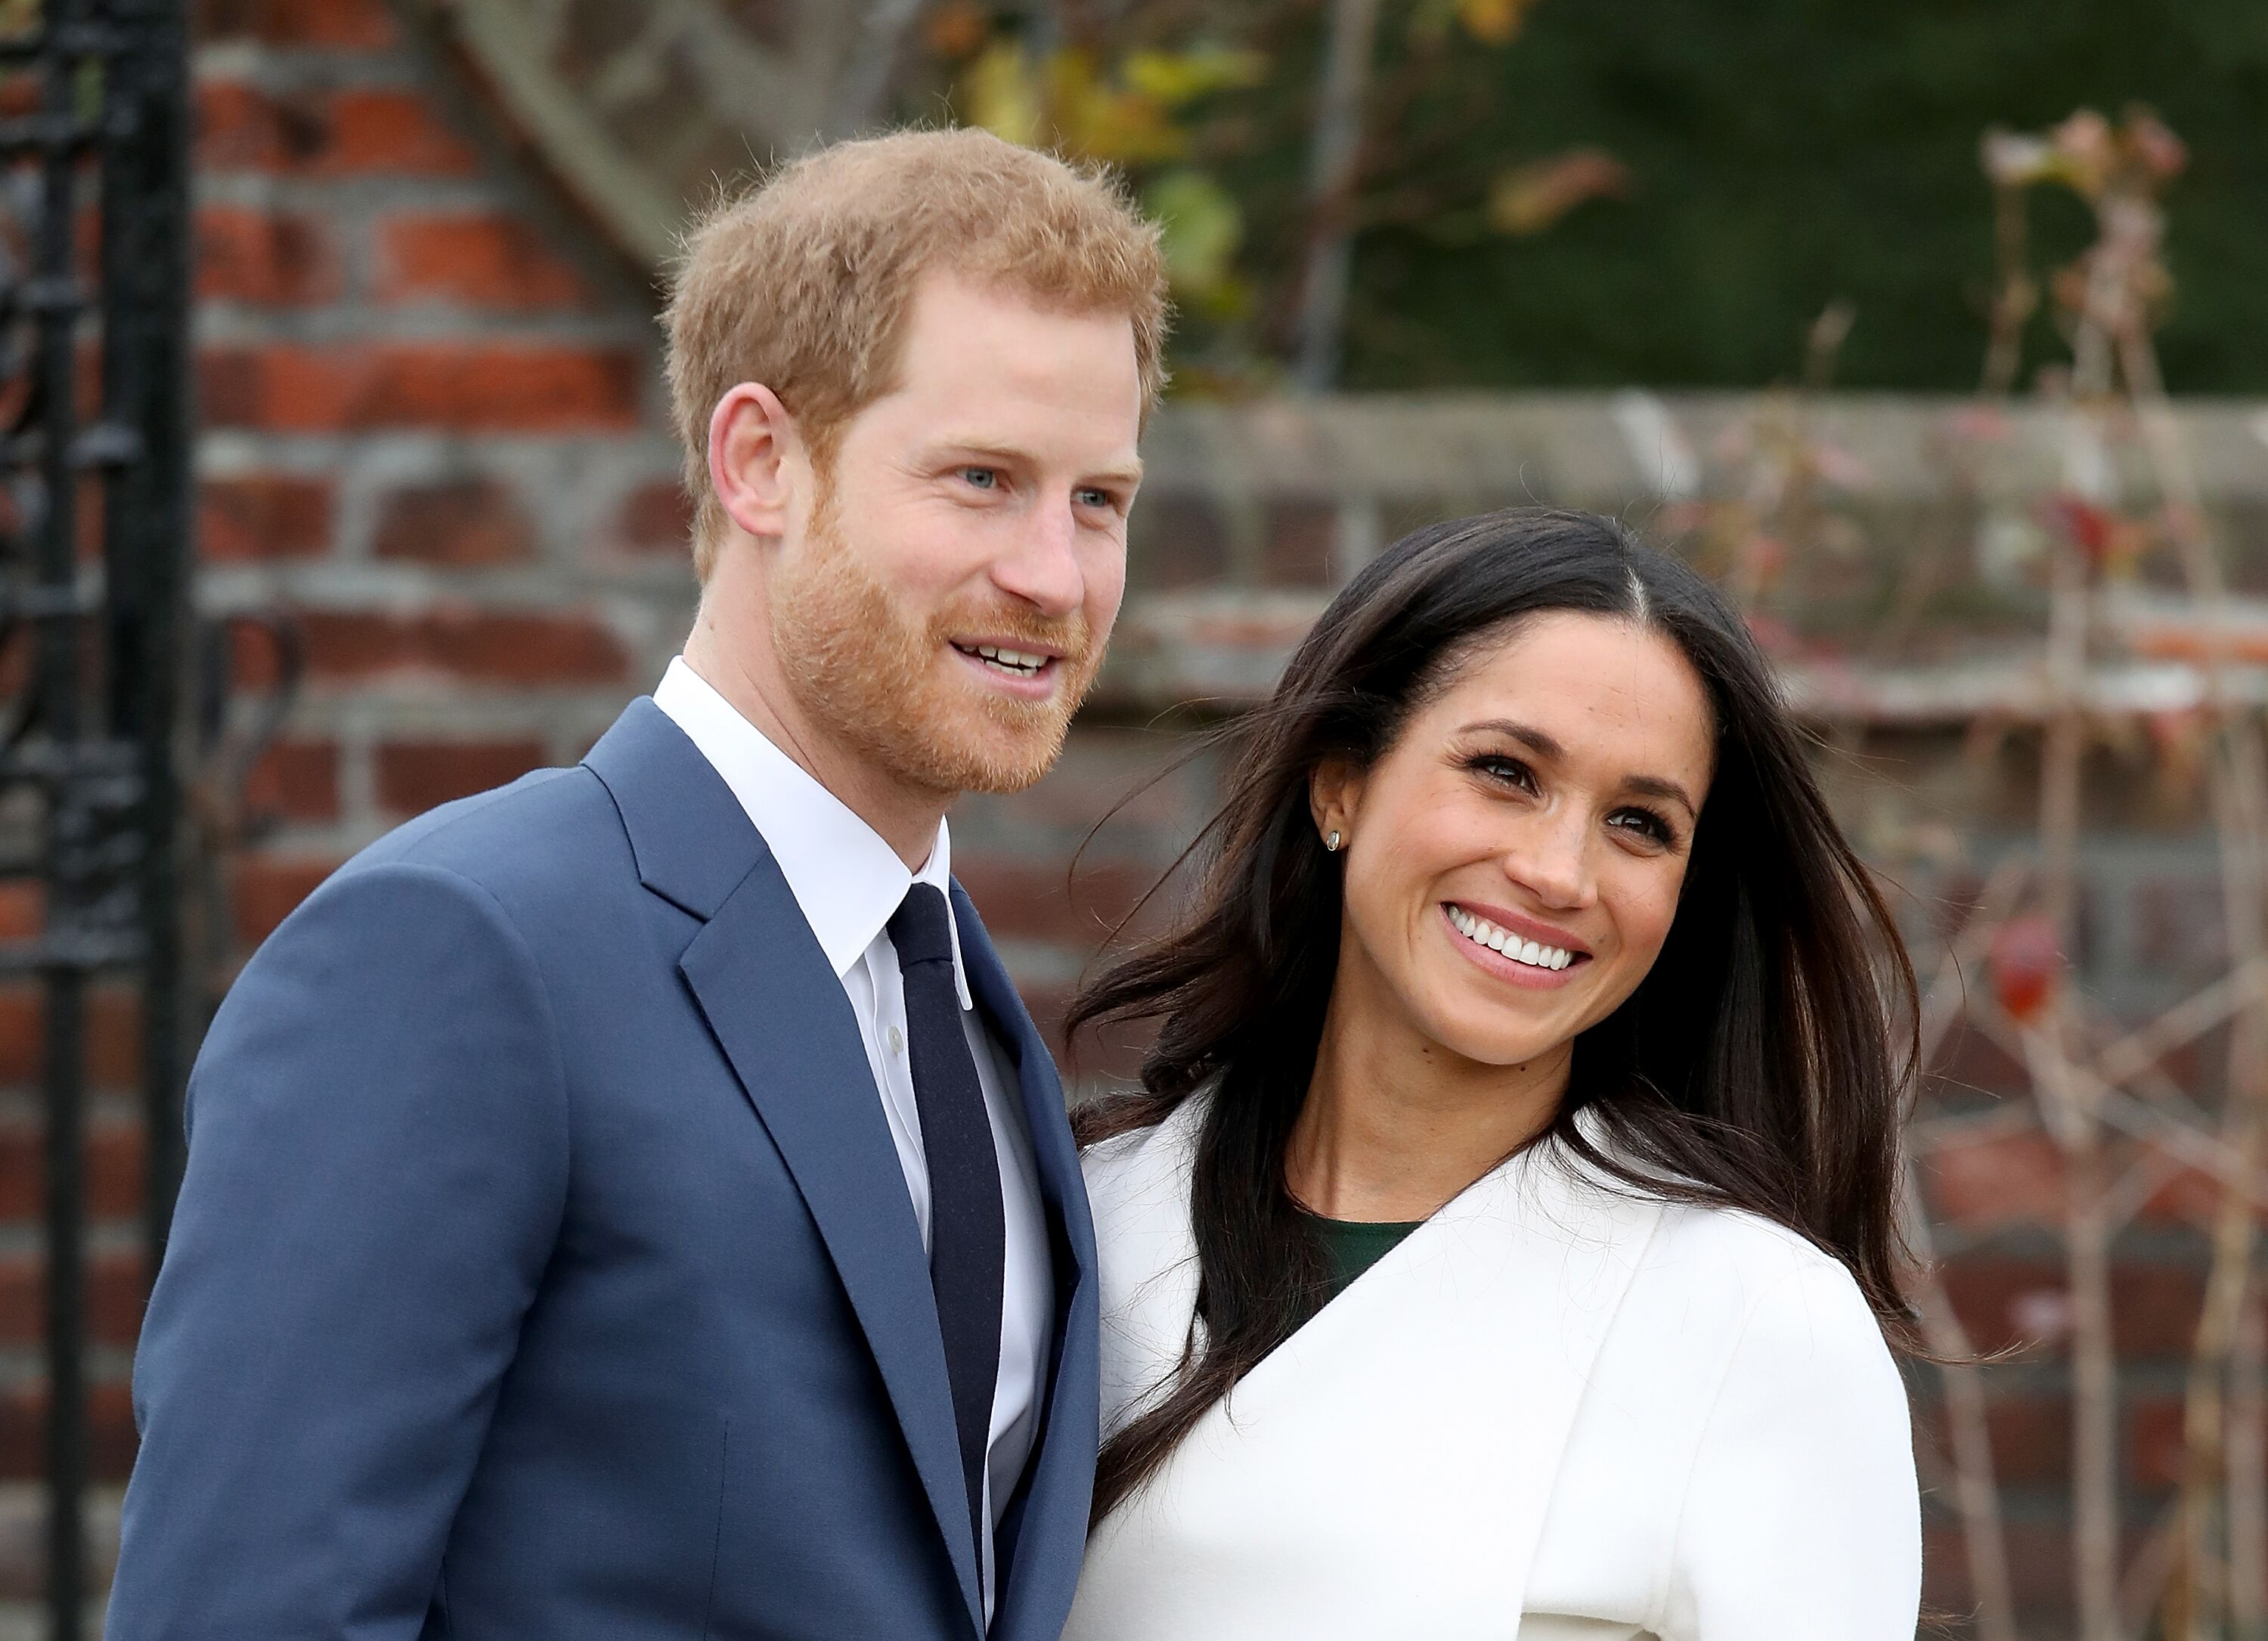 Prince Harry and actress Meghan Markle during an official photocall to announce their engagement at The Sunken Gardens at Kensington Palace on November 27, 2017 in London, England. | Photo: Getty Images